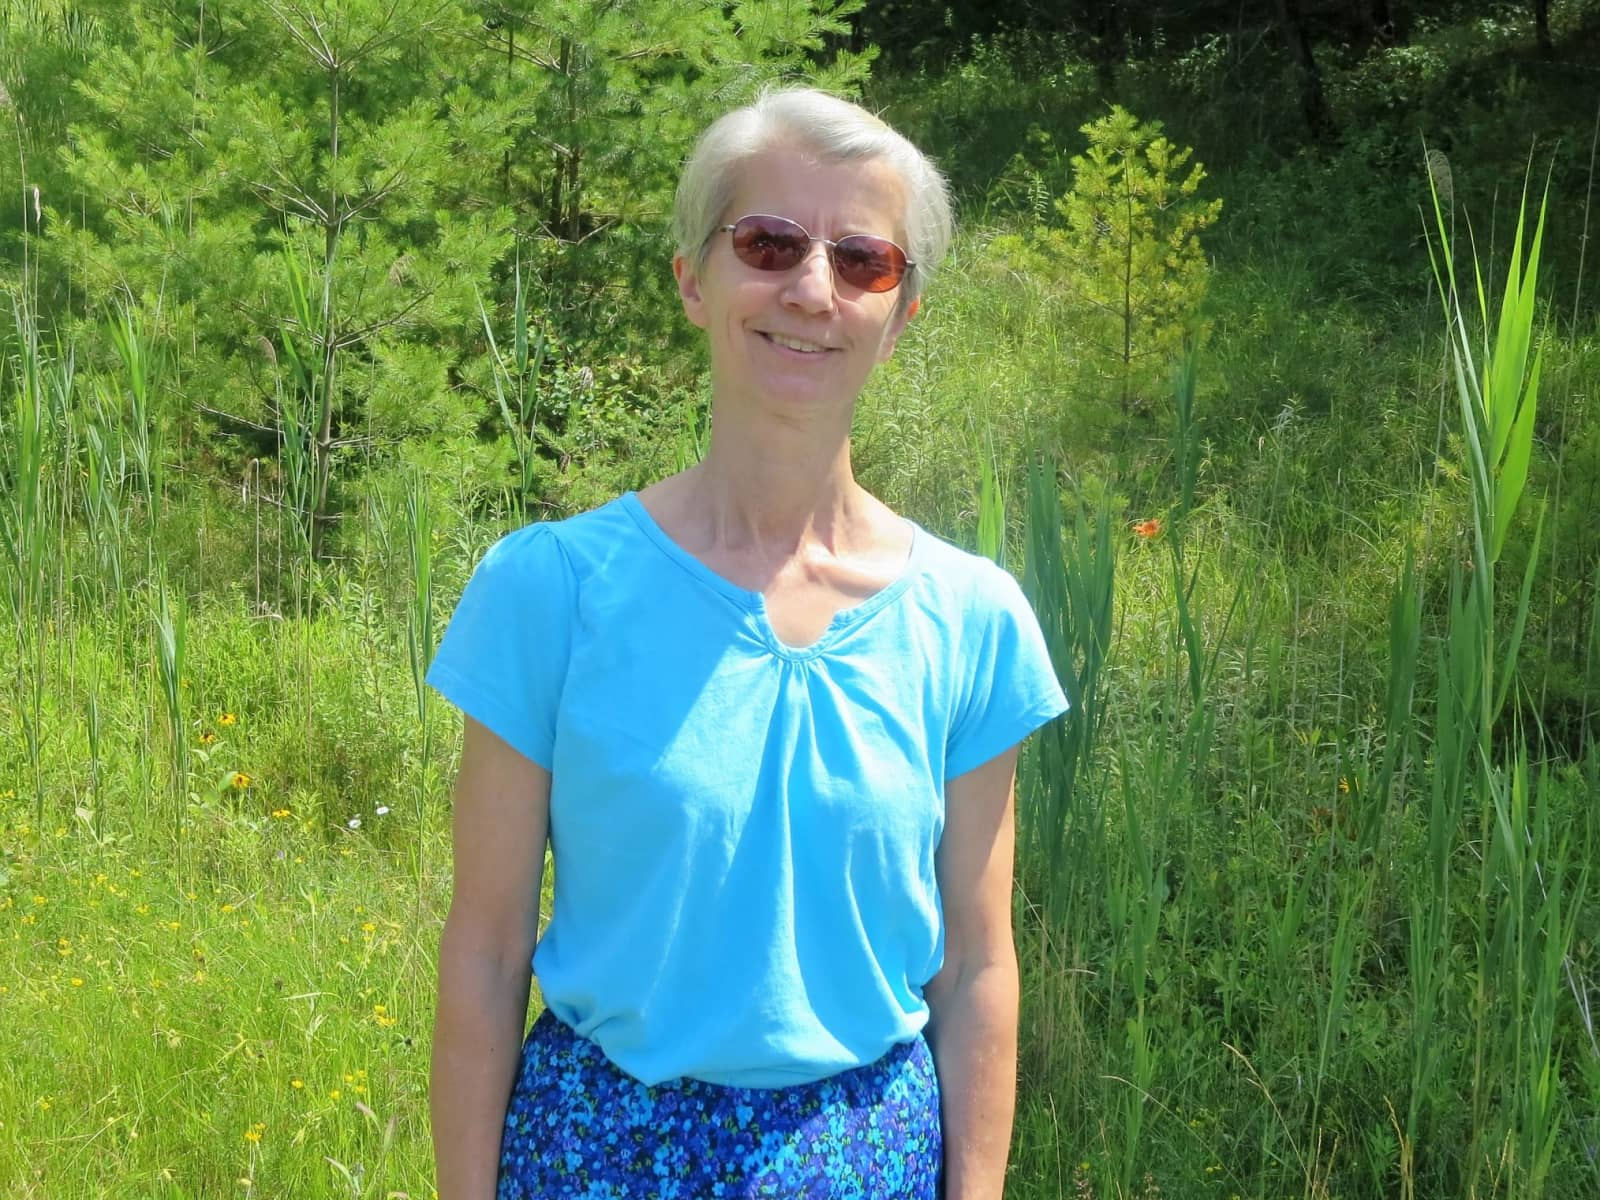 Sharon from Canaan Center, New Hampshire, United States